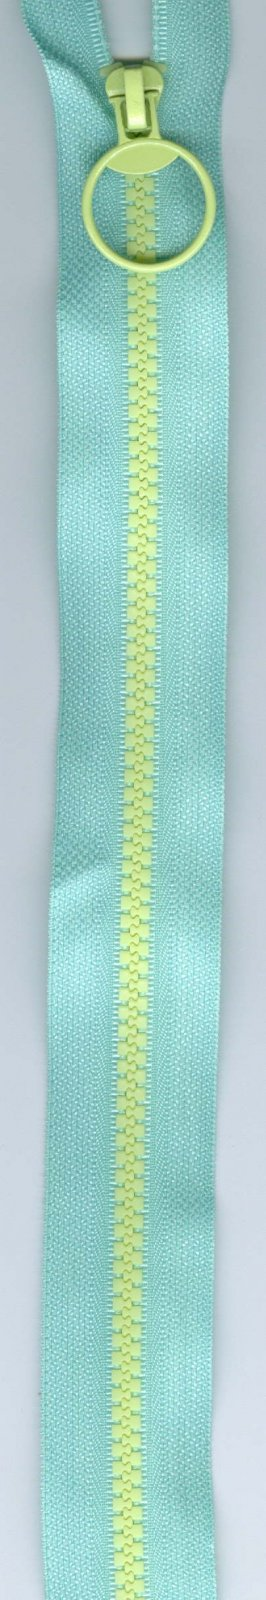 16 Separating Zipper #5 - Blue with Yellow Teeth